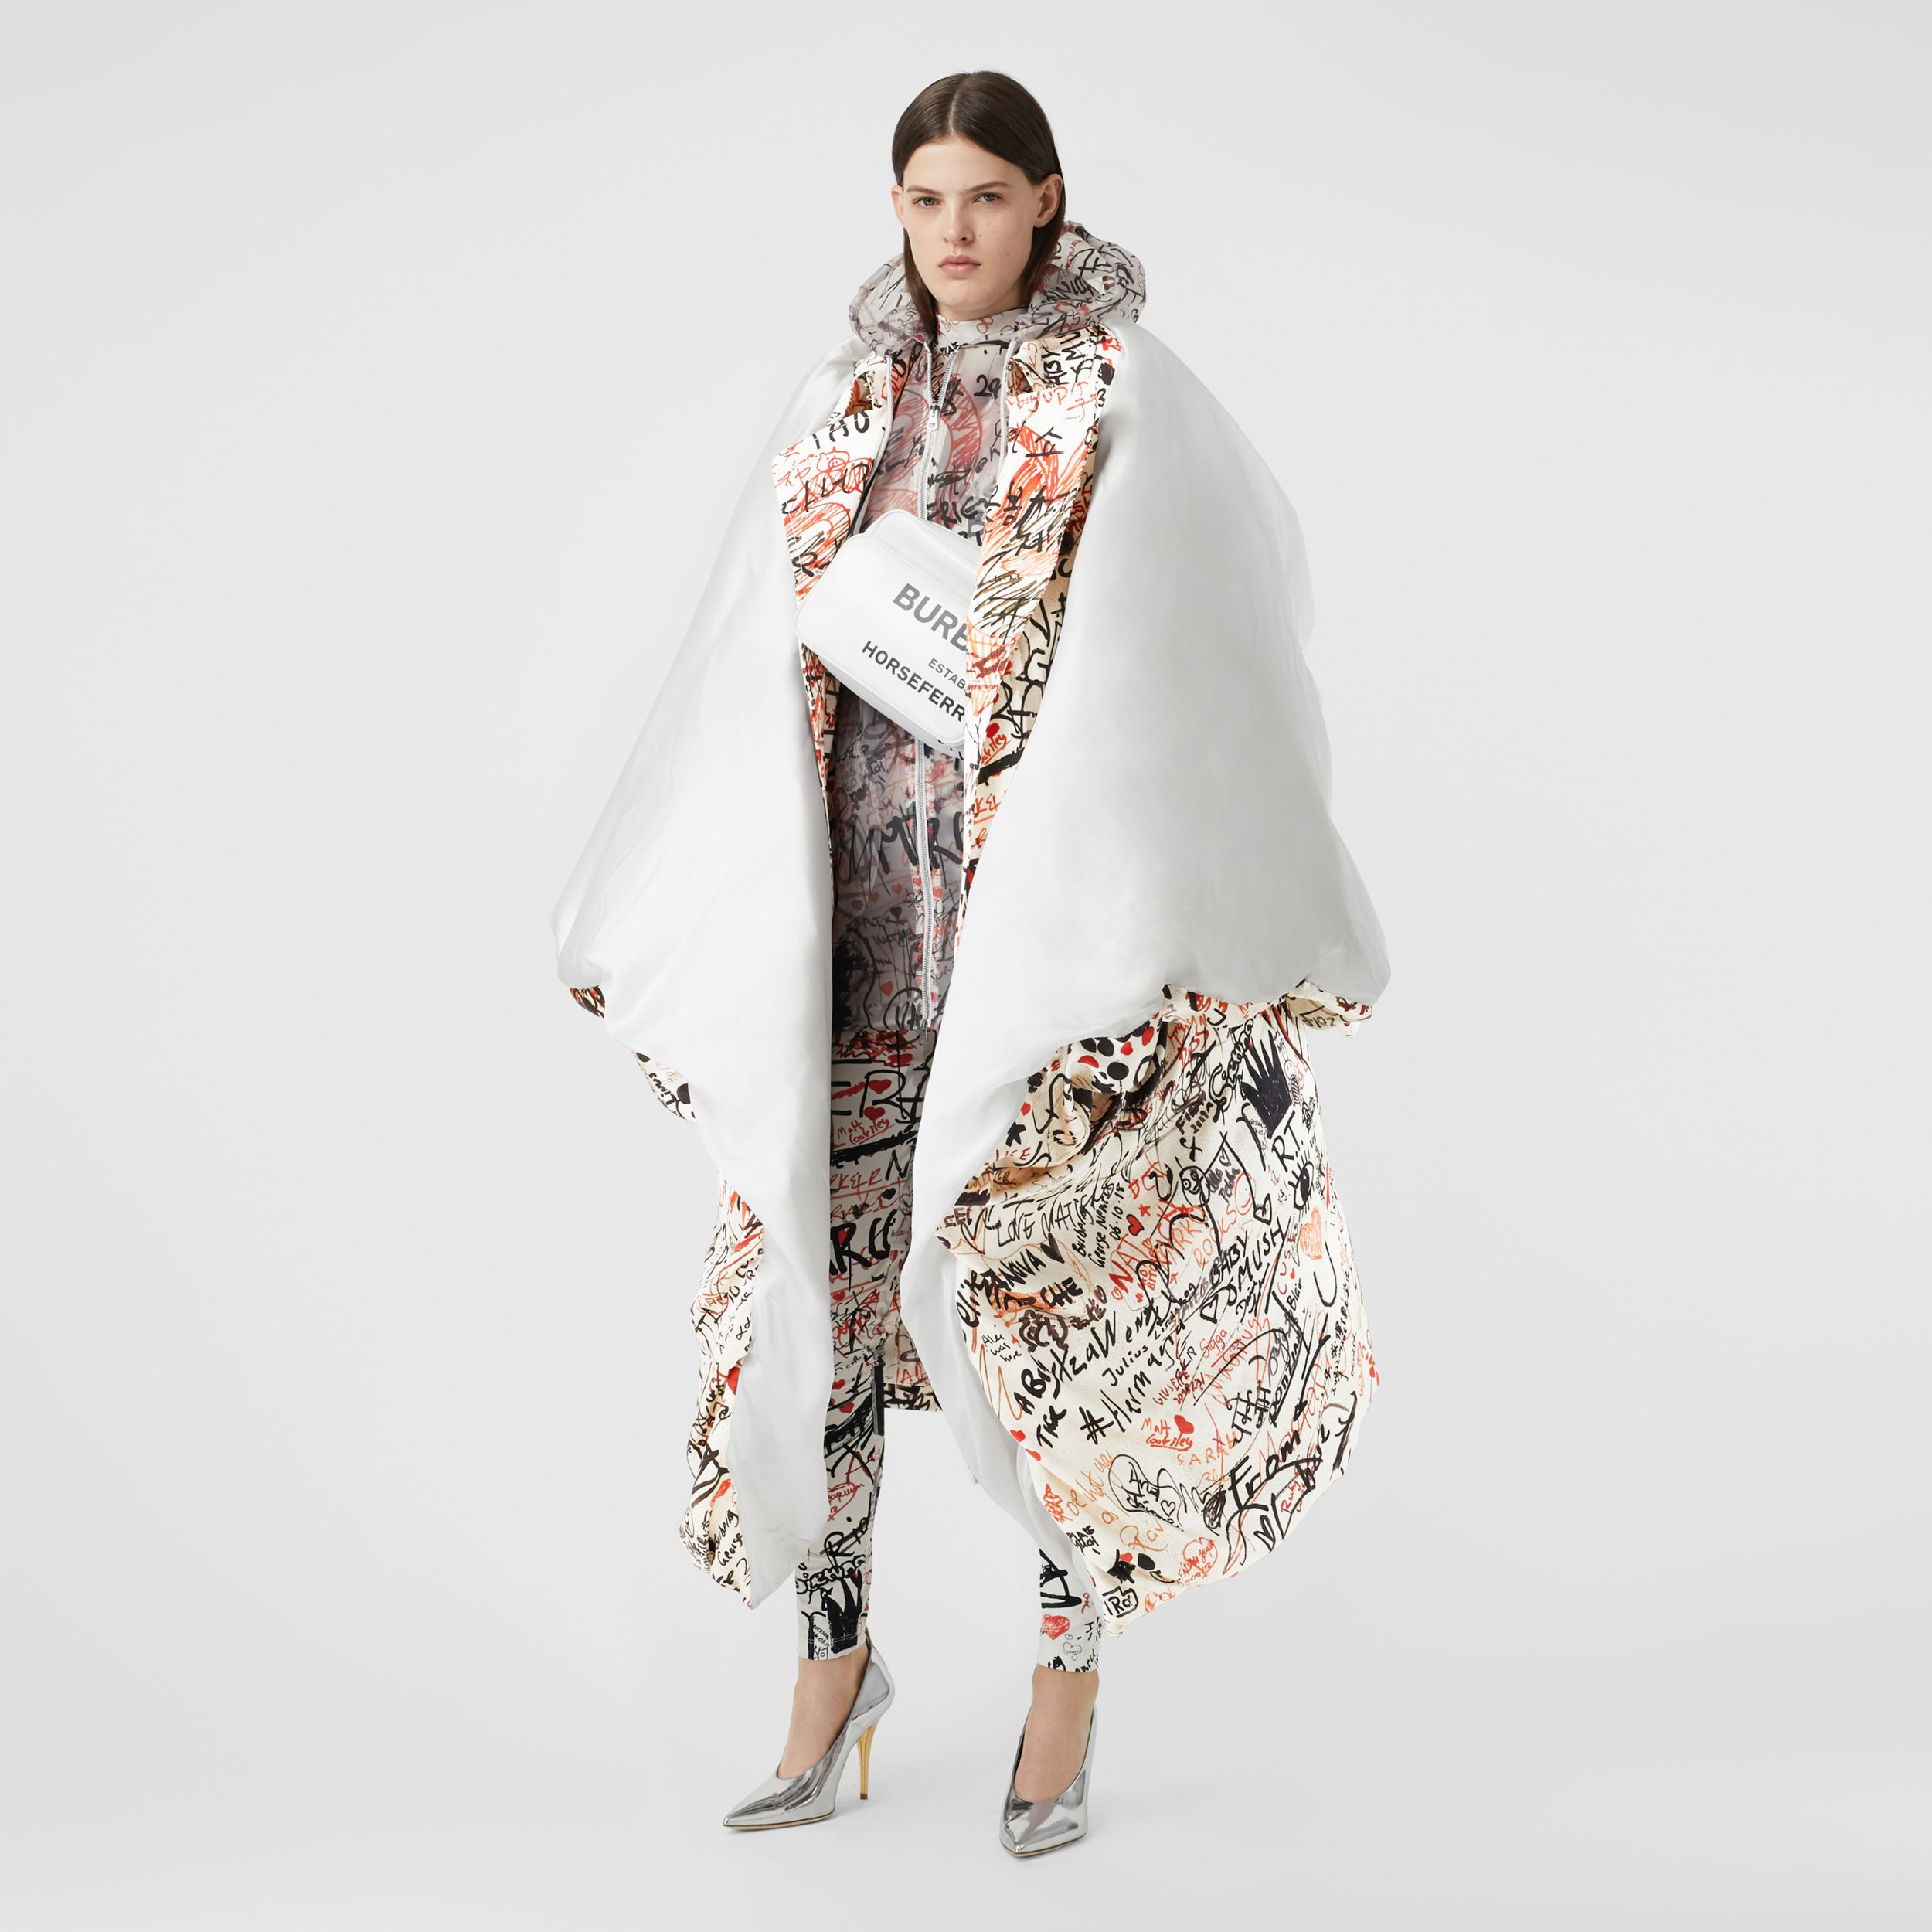 Graffiti Print Silk Satin Oversized Puffer Cape in Natural White - Women | Burberry - 1